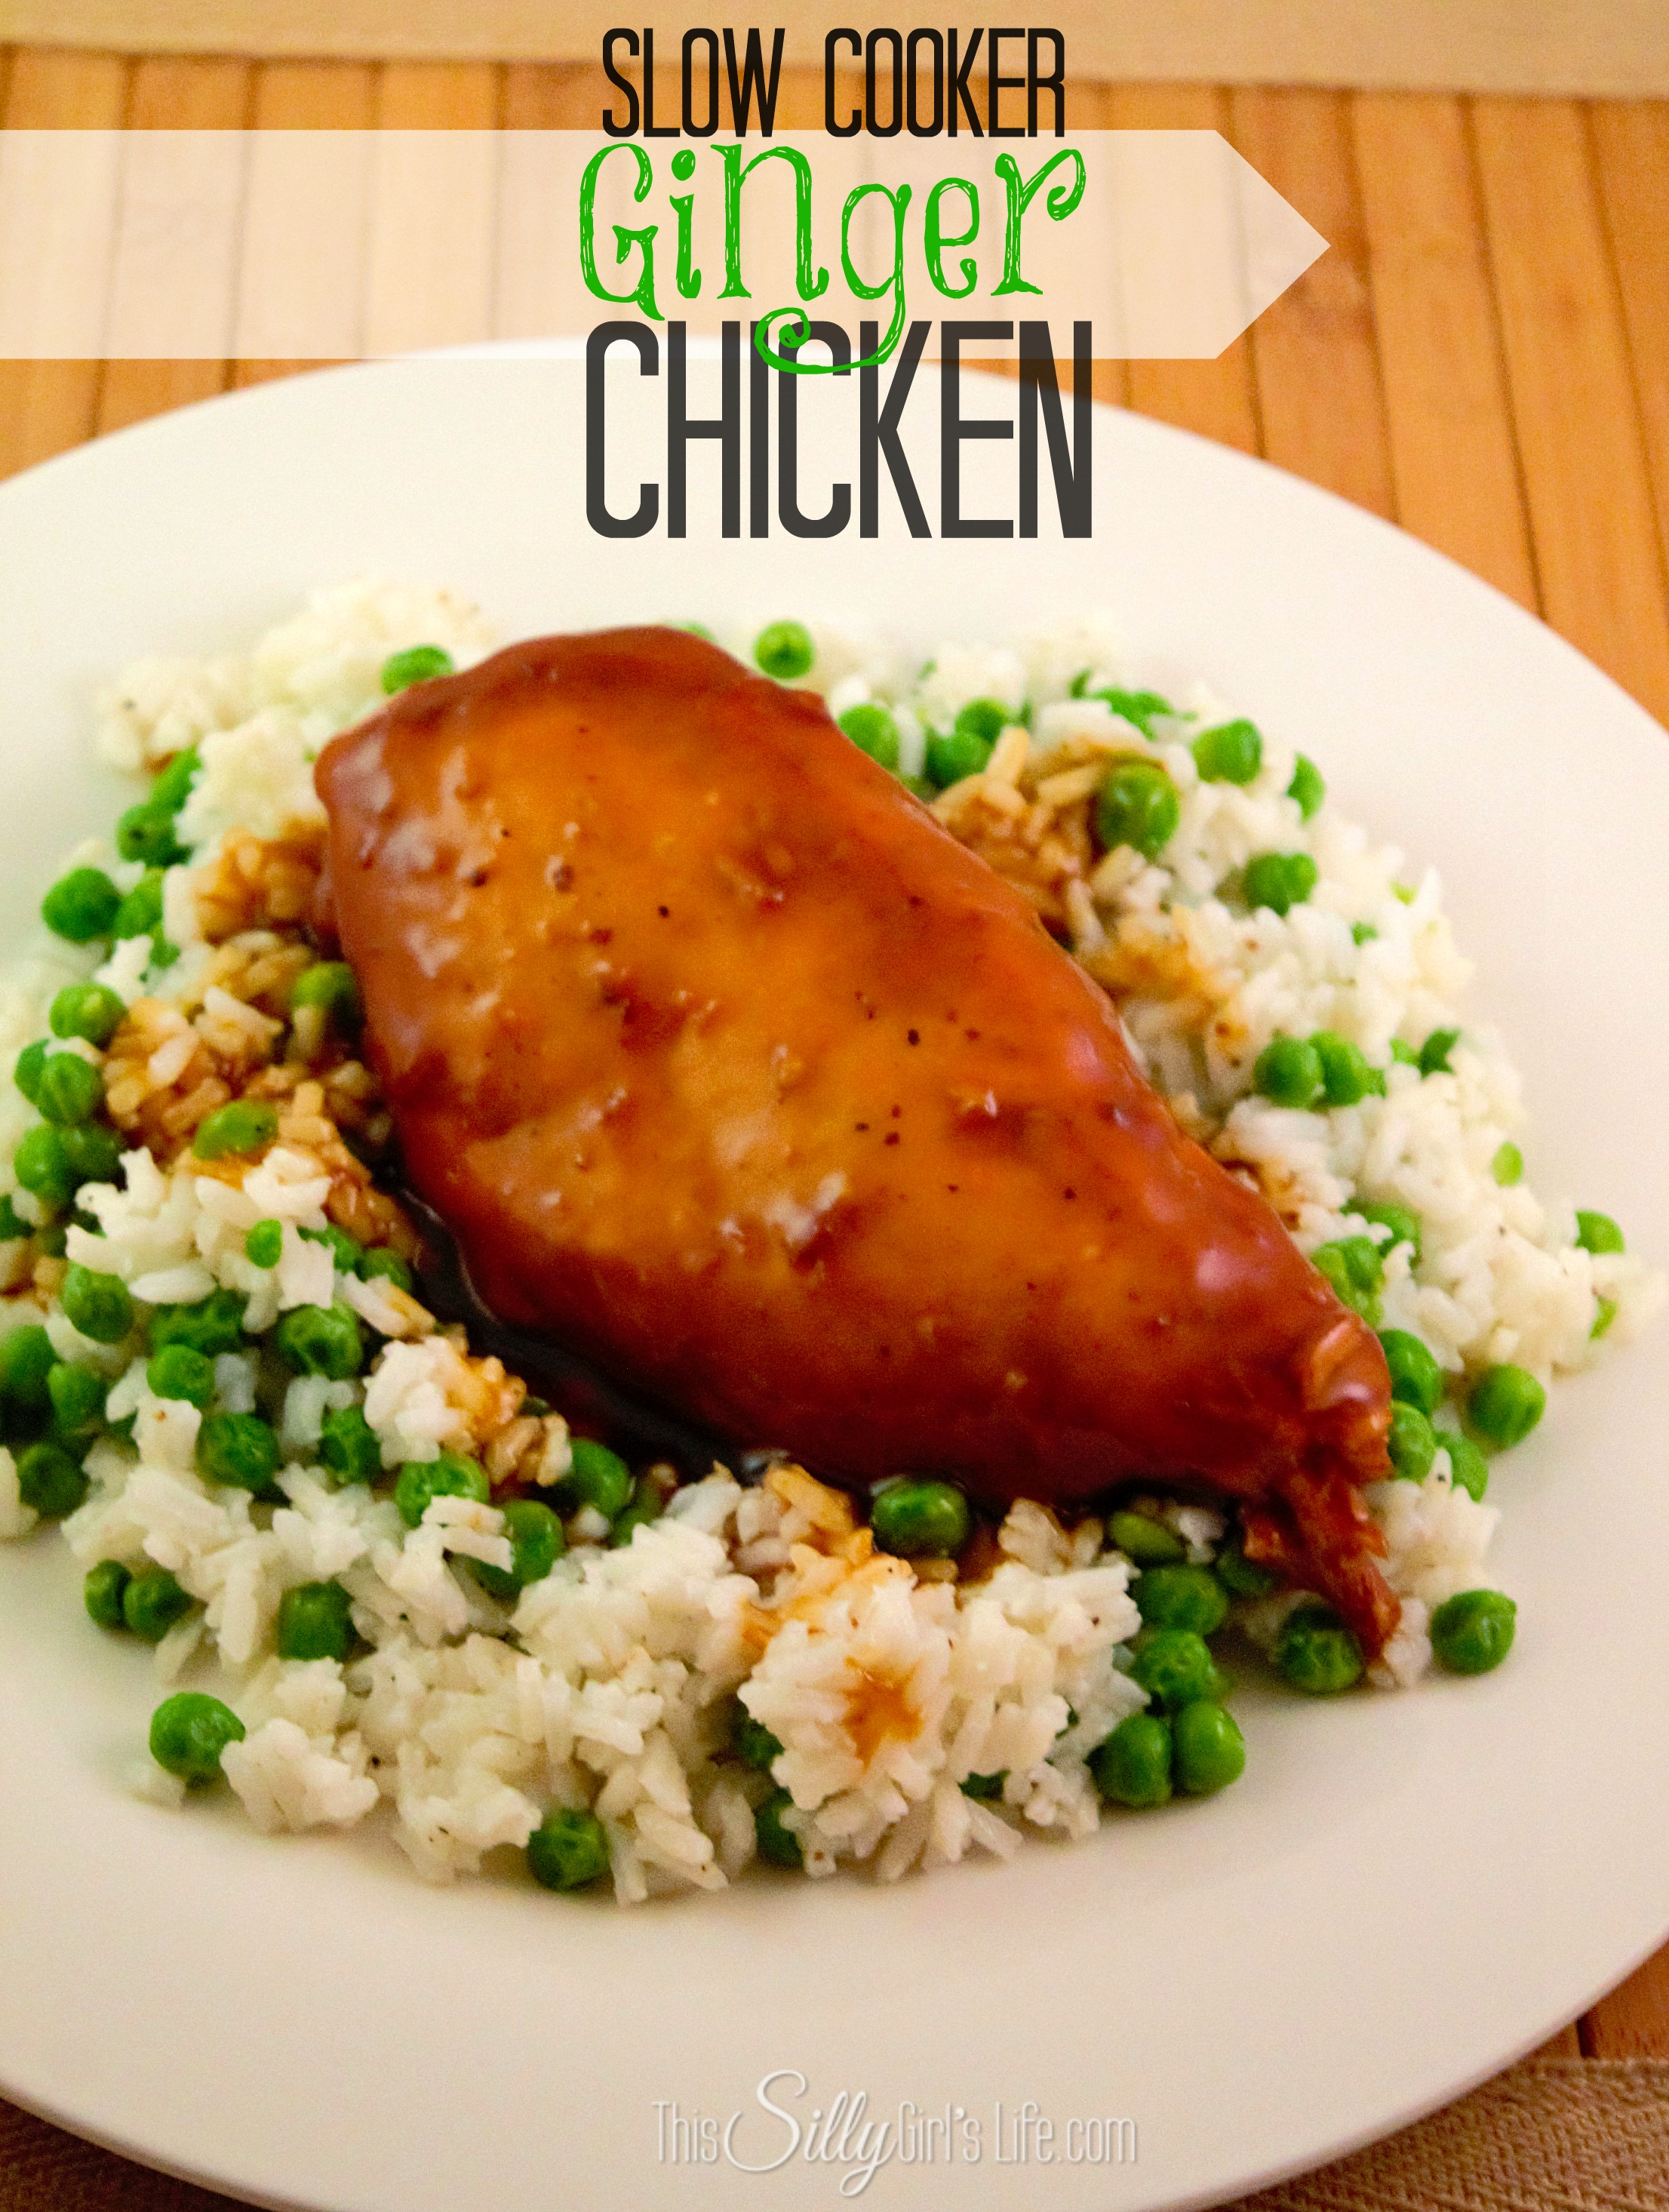 Slow Cooker Ginger Chicken recipe from https://ThisSillyGirlsLife.com #SlowCooker #Chicken #Asian #GingerChicken